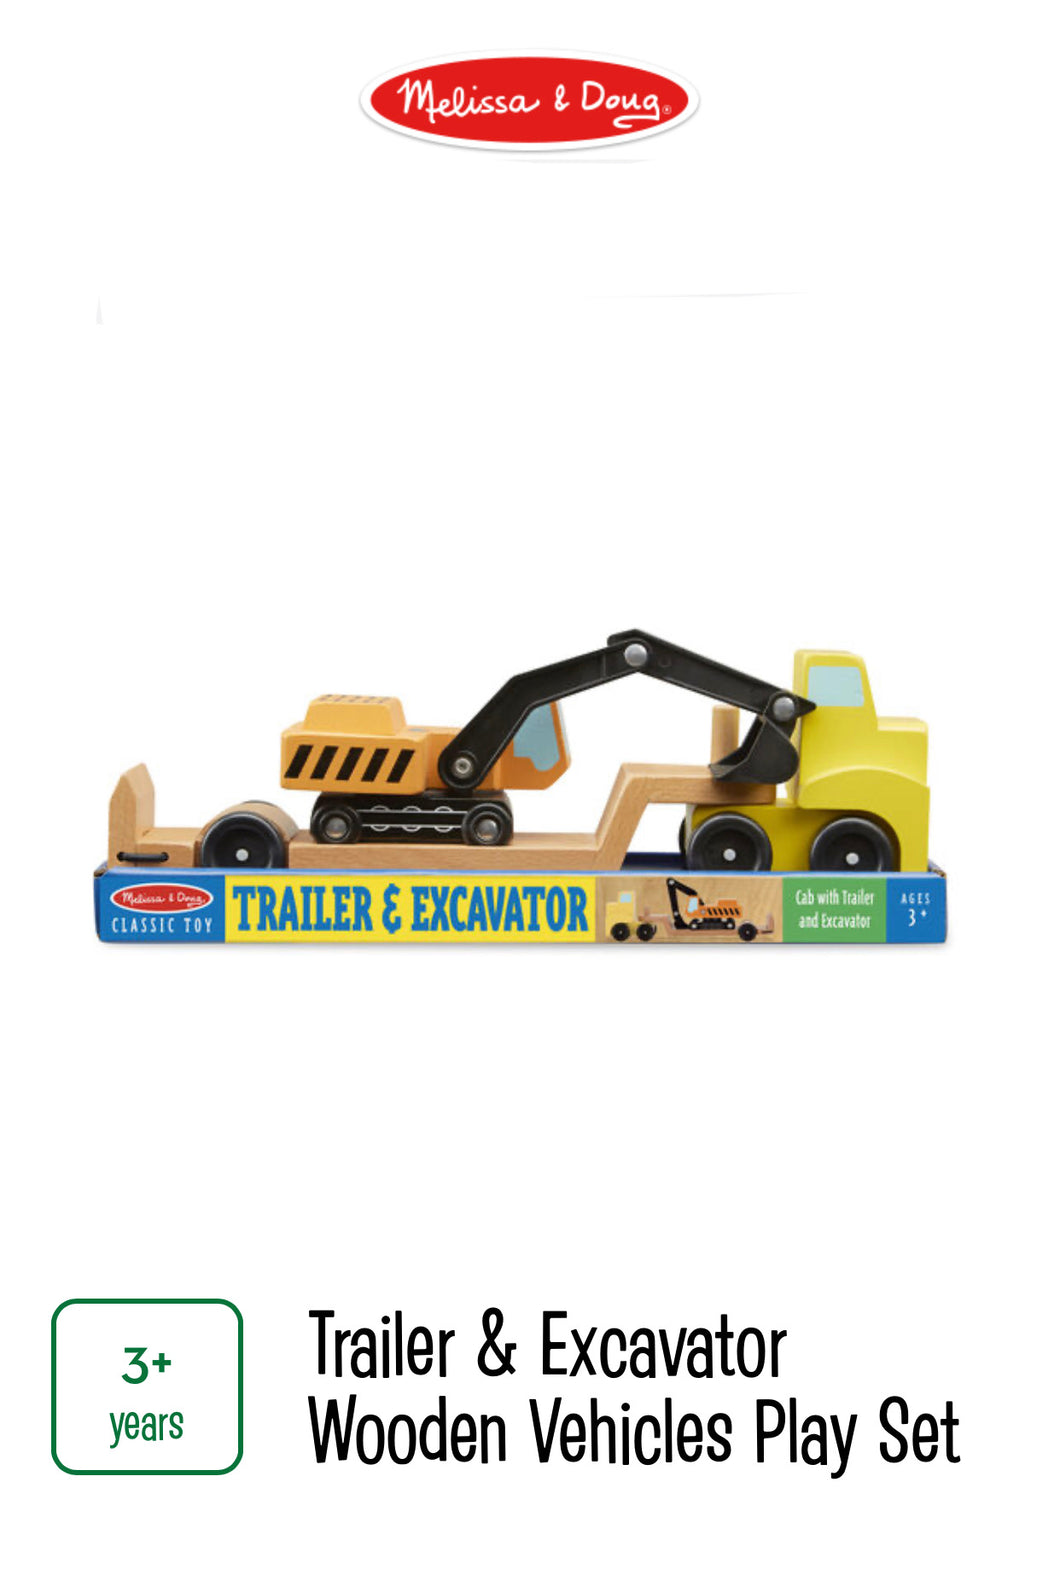 Trailer & Excavator Wooden Vehicle Play Set